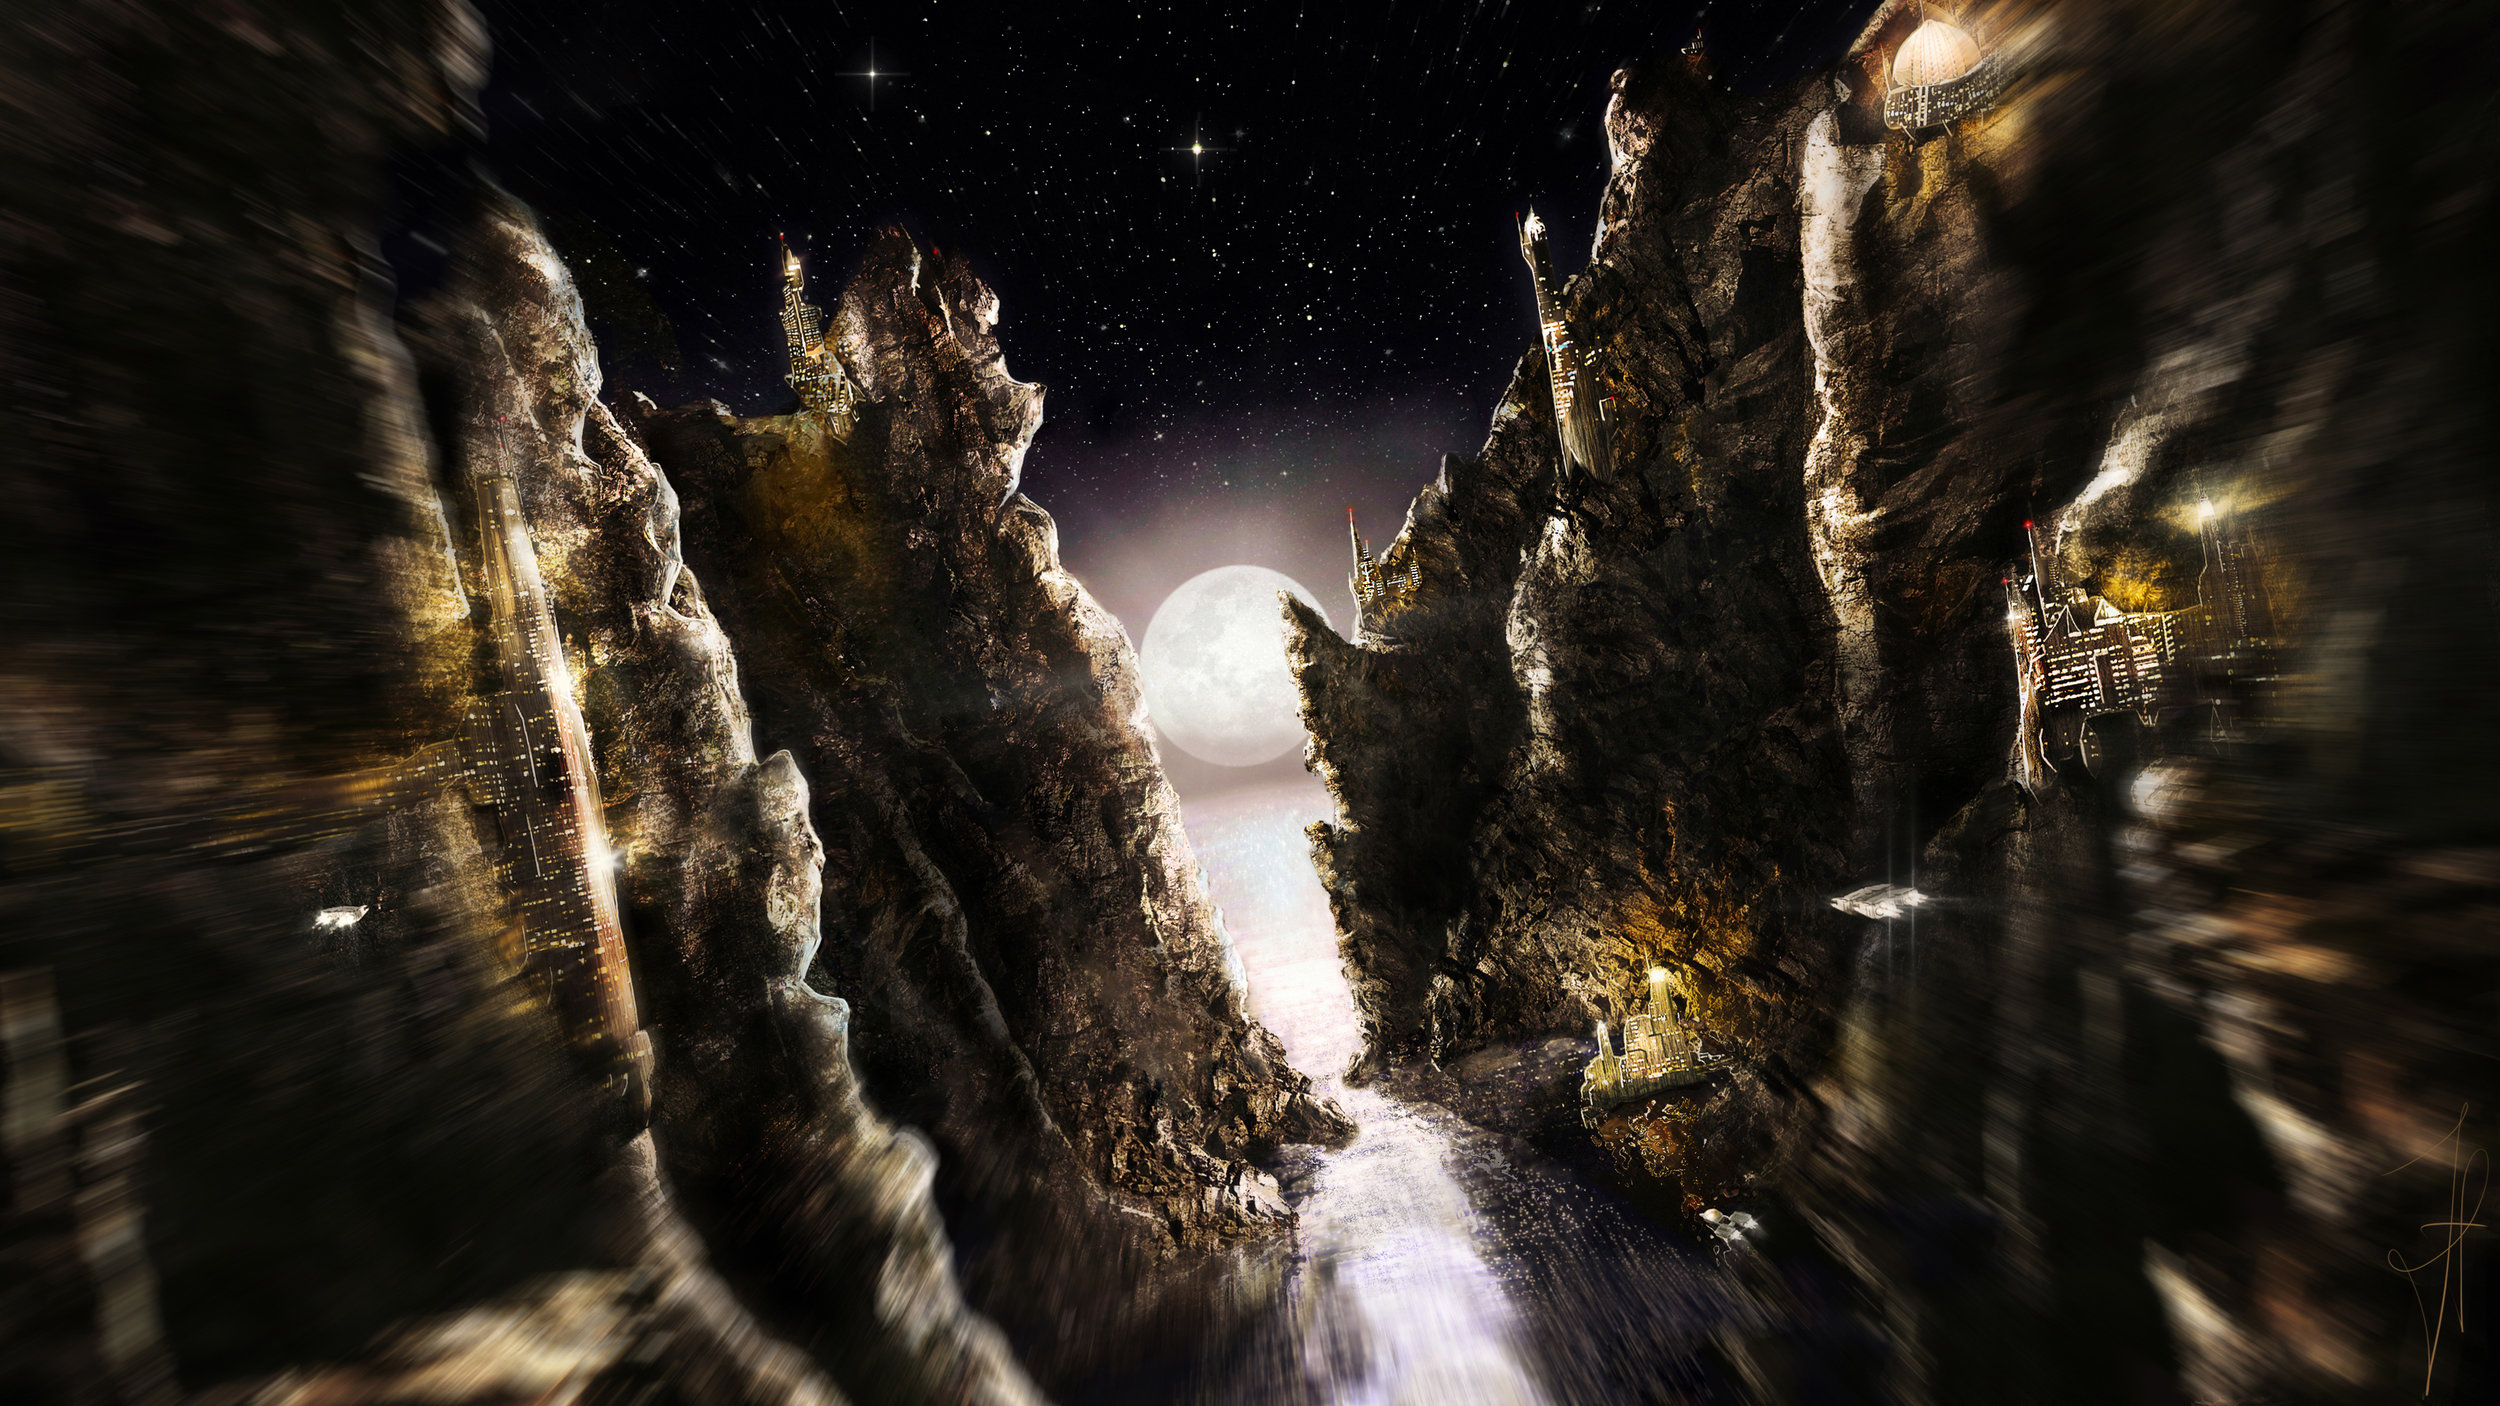 The Night Cliffs - Flying through the night to the next destination, as the lights blurry and shine for a last time.Making of and animation: SoonDate: 2012Tools: Photoshop - Wacom Tablet - PC